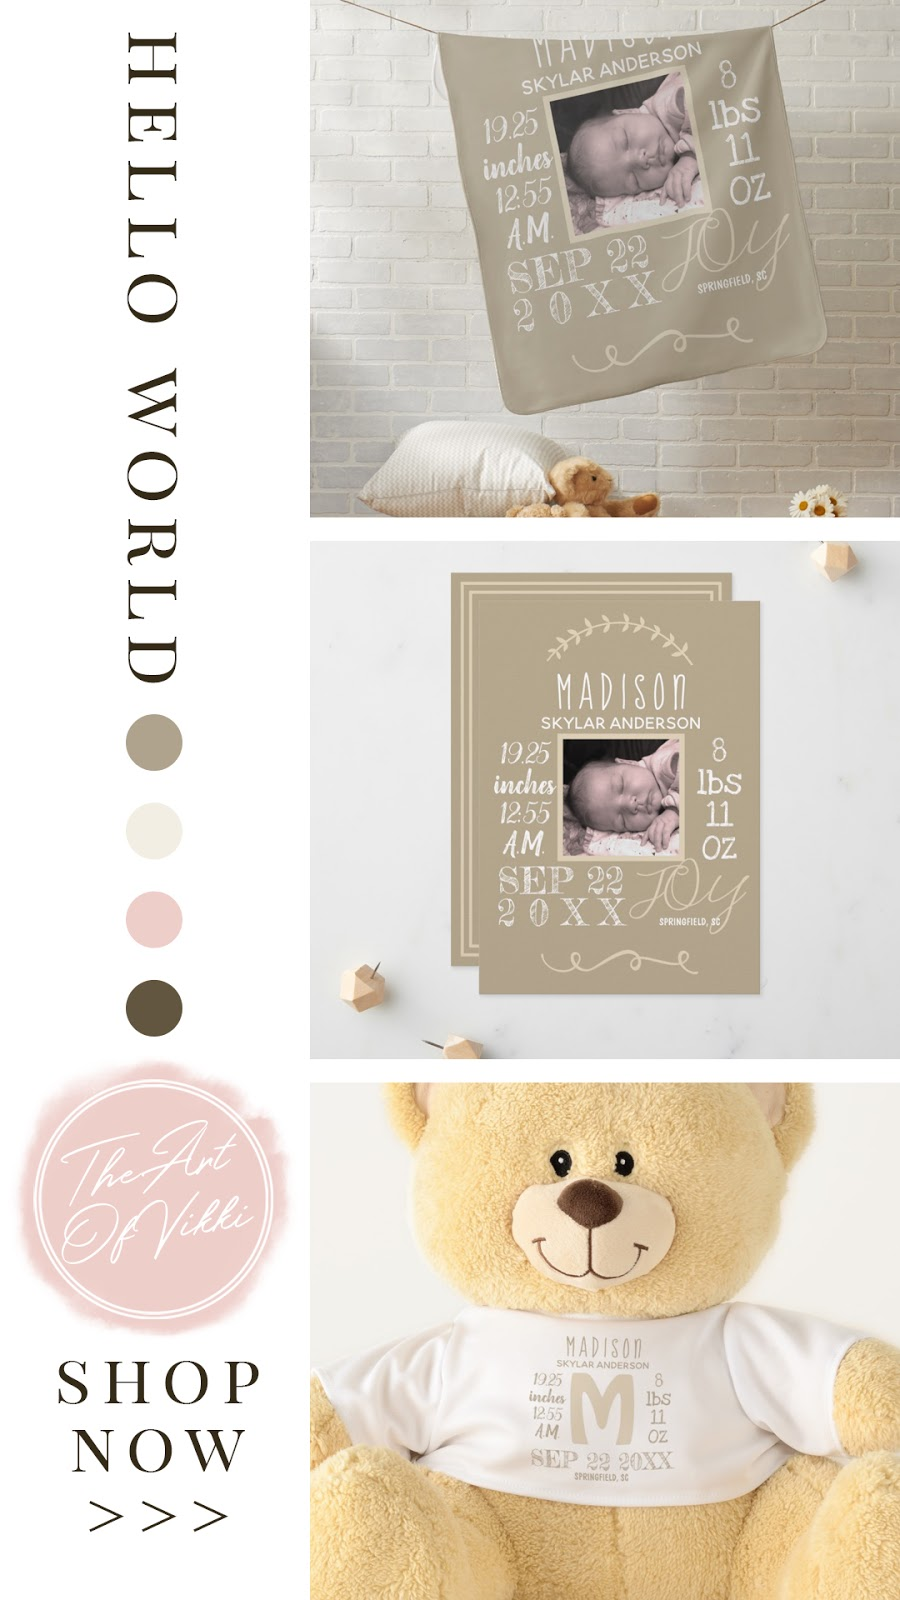 Welcome New Baby Rustic Nursery Suite collection. Featuring personalized birth stats on, keepsakes, pillows, blankets, and nursery decor. In a oak tree brown, vintage lace ivory white, ballet slipper pink, and burlap tan color palette.